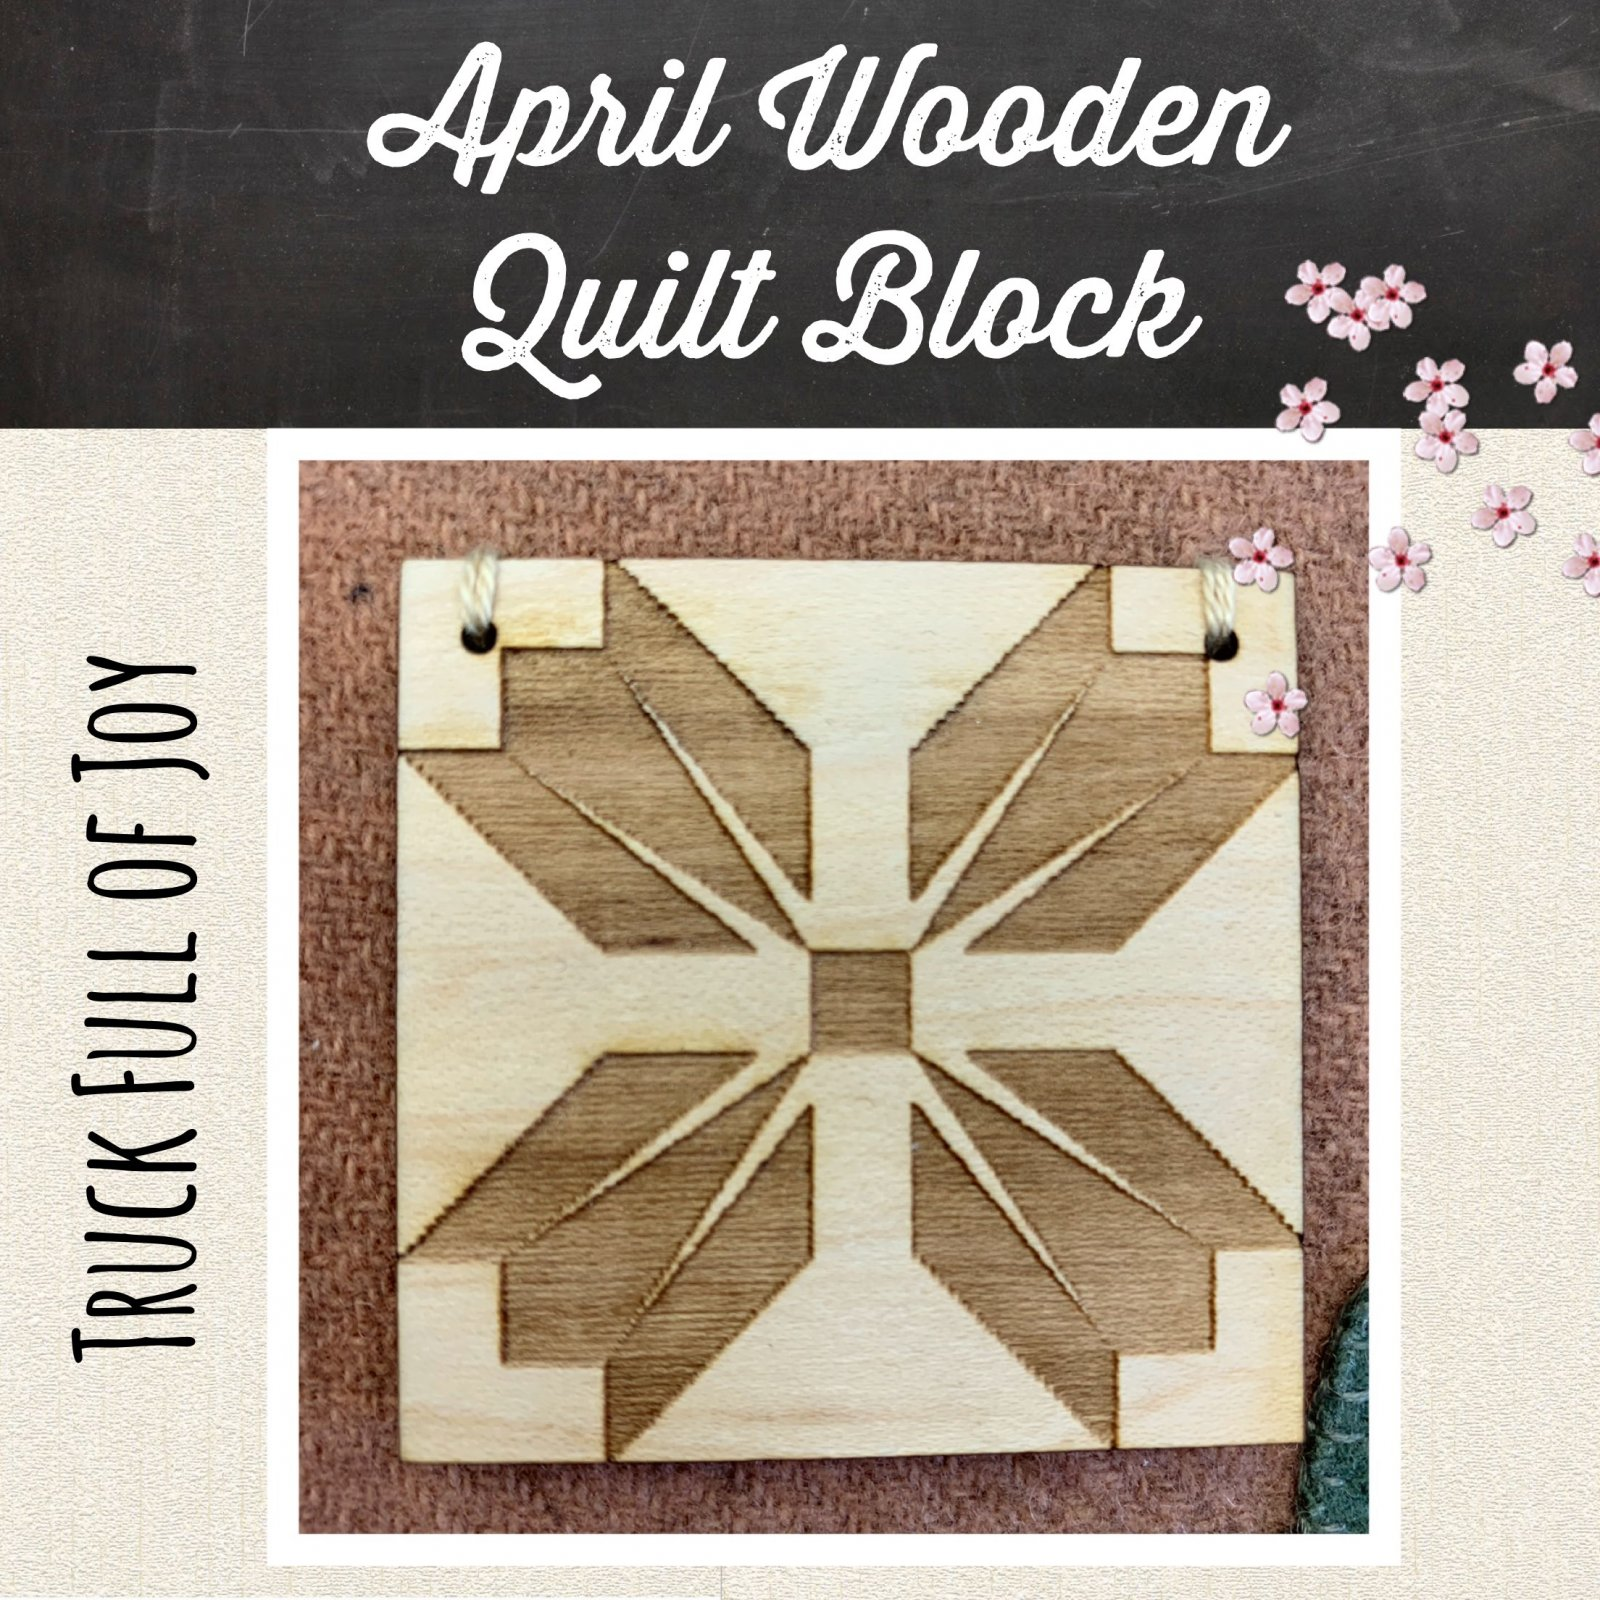 Trucks Full of Joy Monthly Pillows April * Wooden Quilt Block